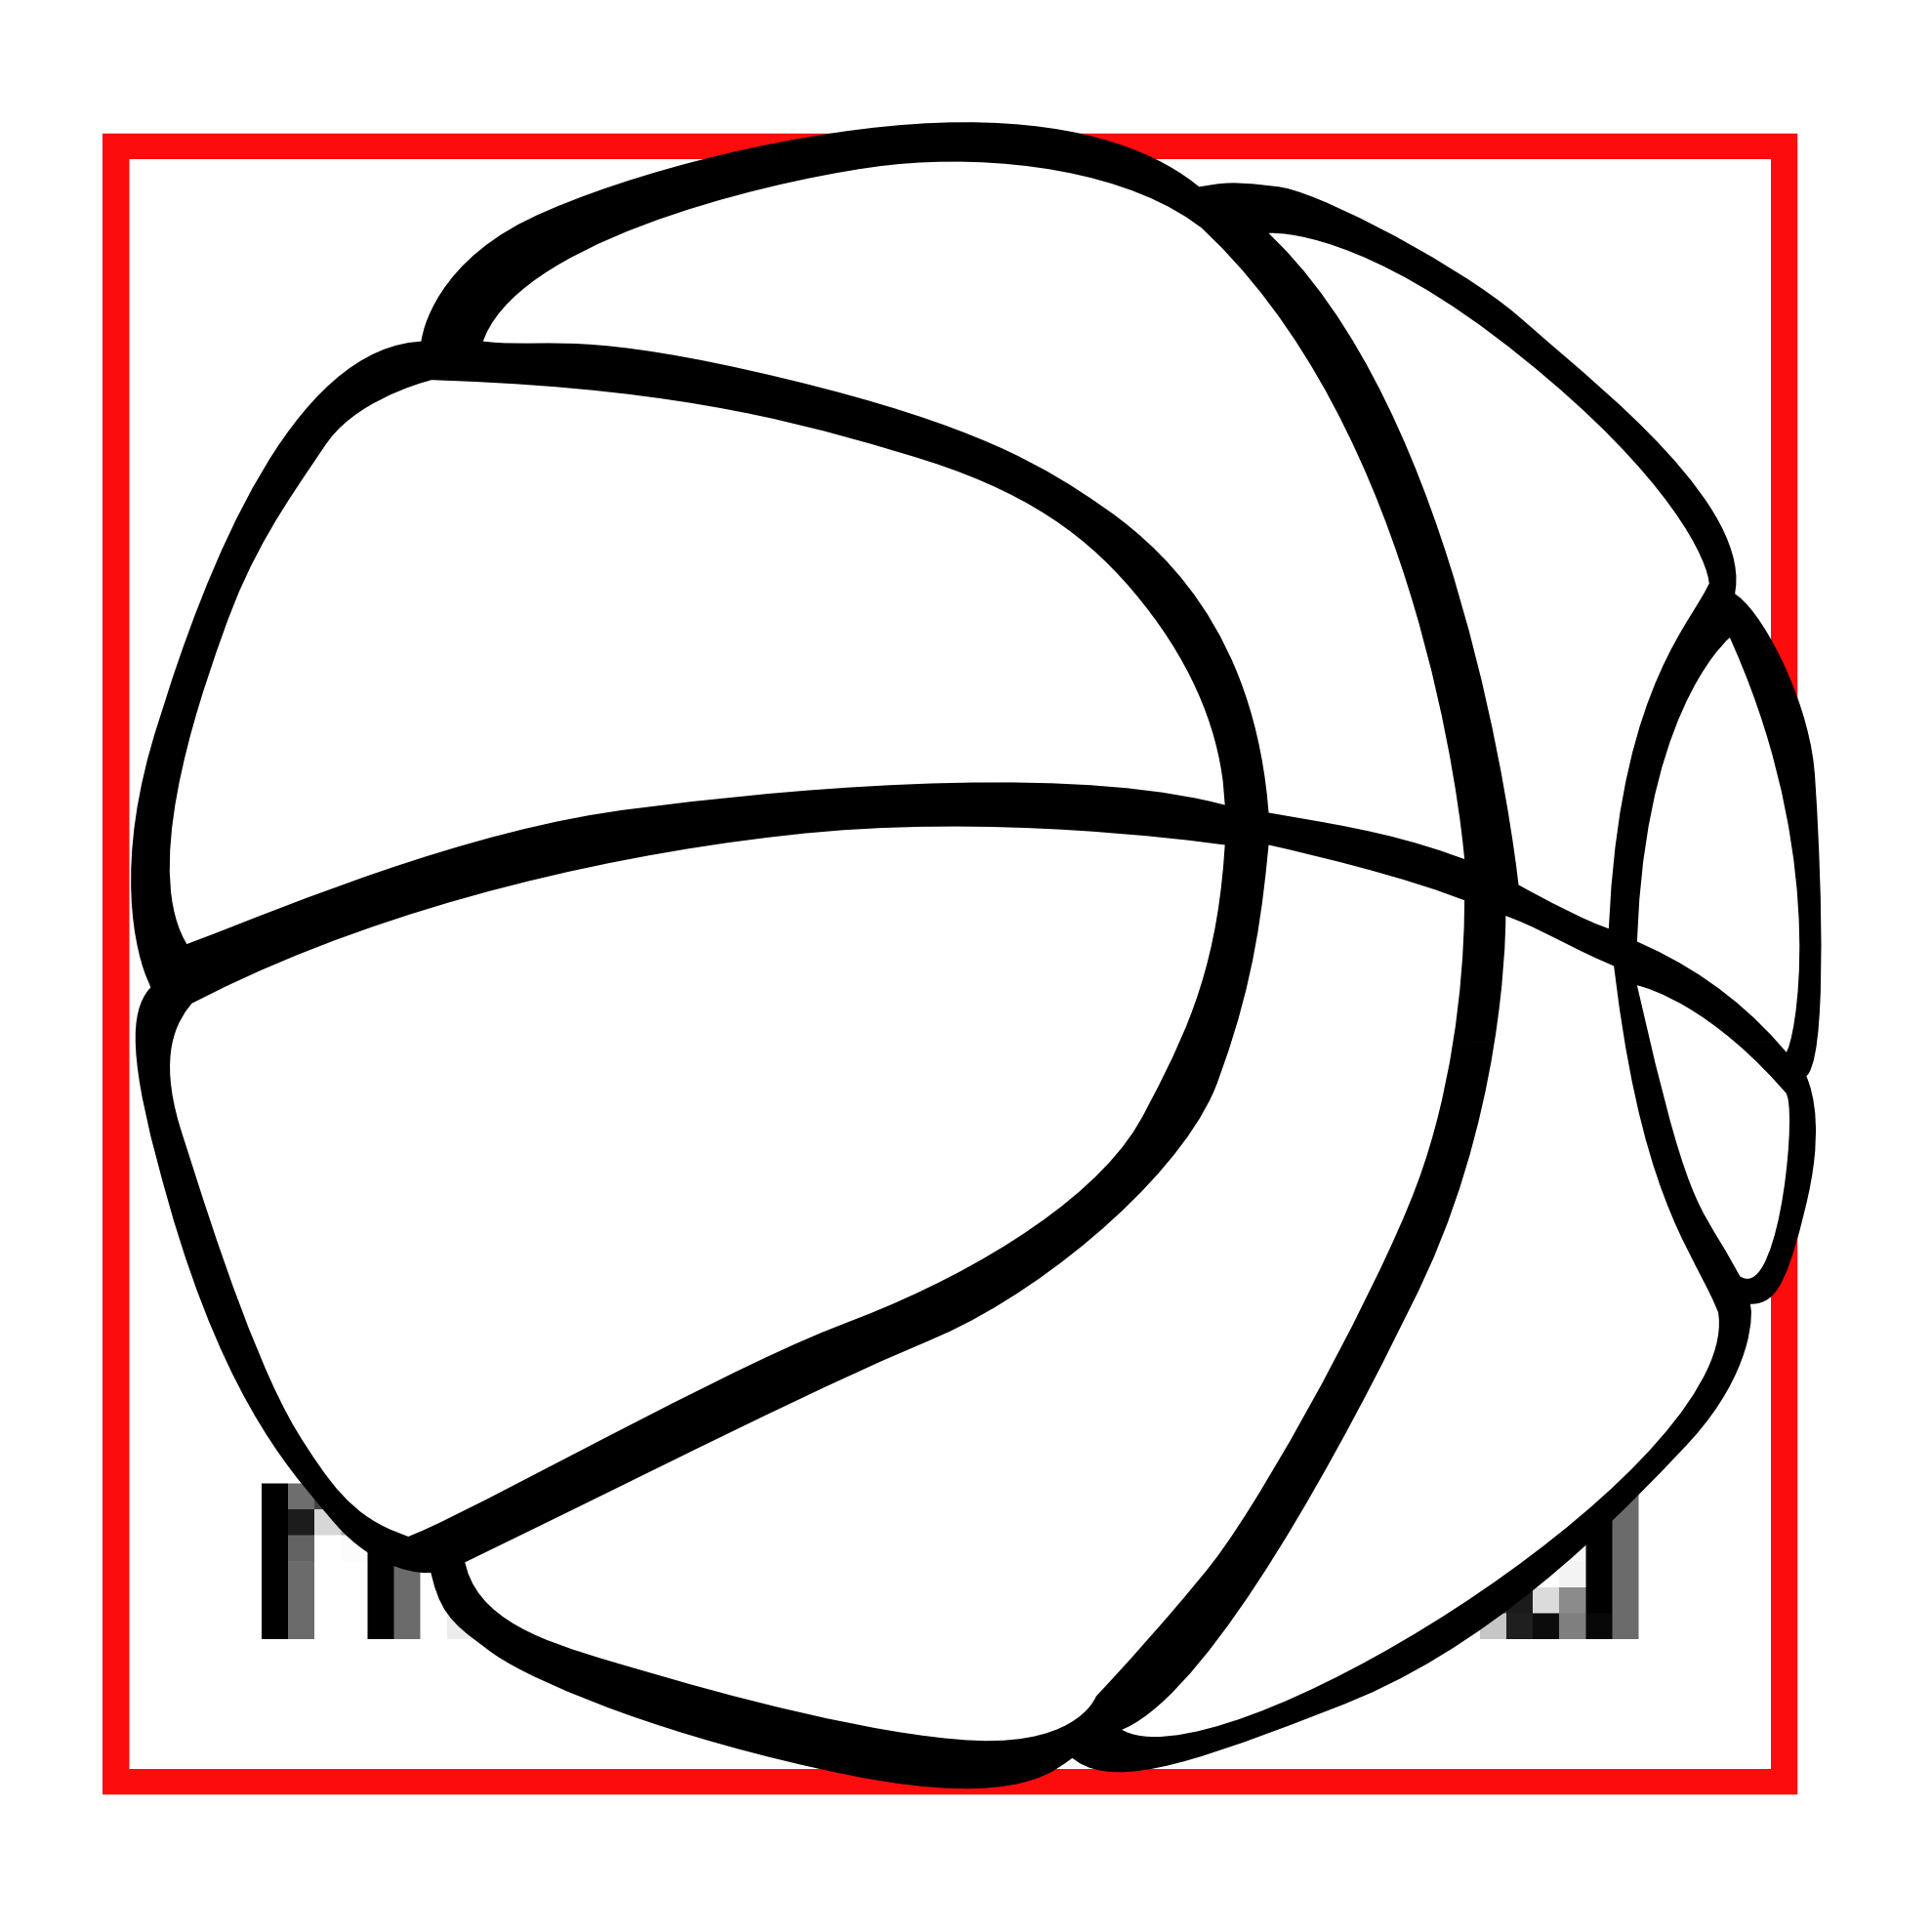 Basketball court clipart black and white clipart freeuse Basketball Line Drawing Clip Art (38+) clipart freeuse